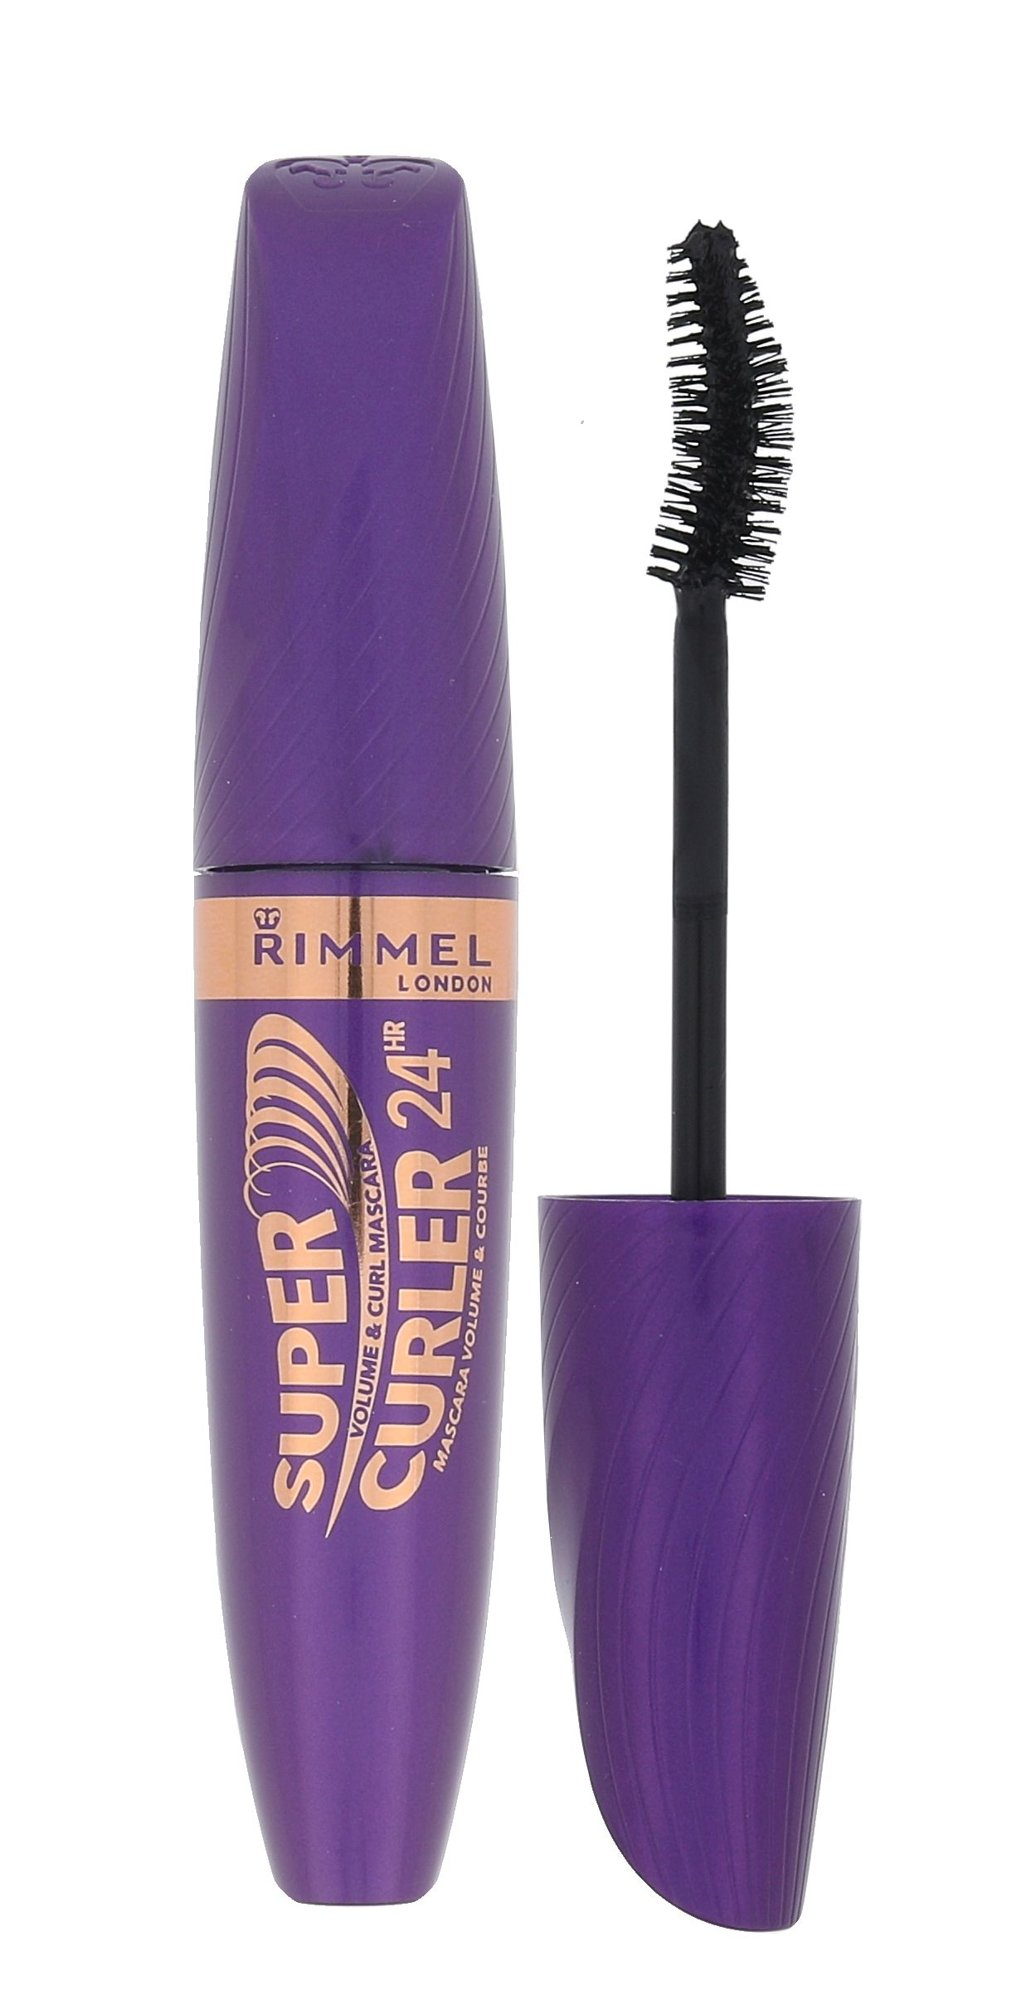 Rimmel London Mascara Supercurler 24hr Cosmetic 12ml 001 Black